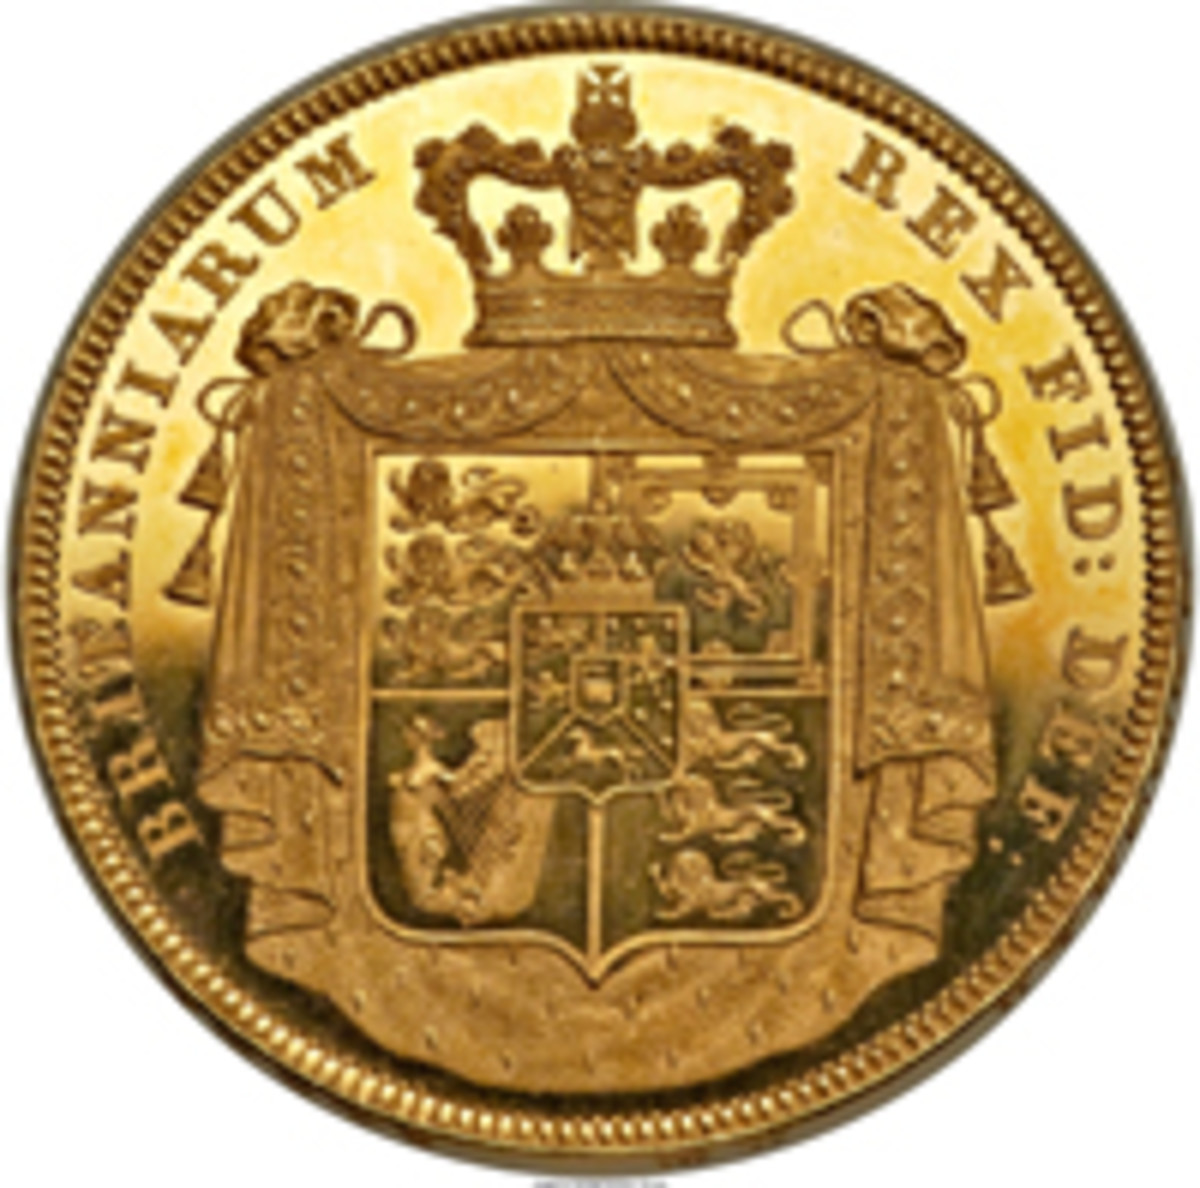 Reverse of George IV gold £5, KM-702, S-3797, that sold for $305,500. (Image courtesy and © www.ha.com)